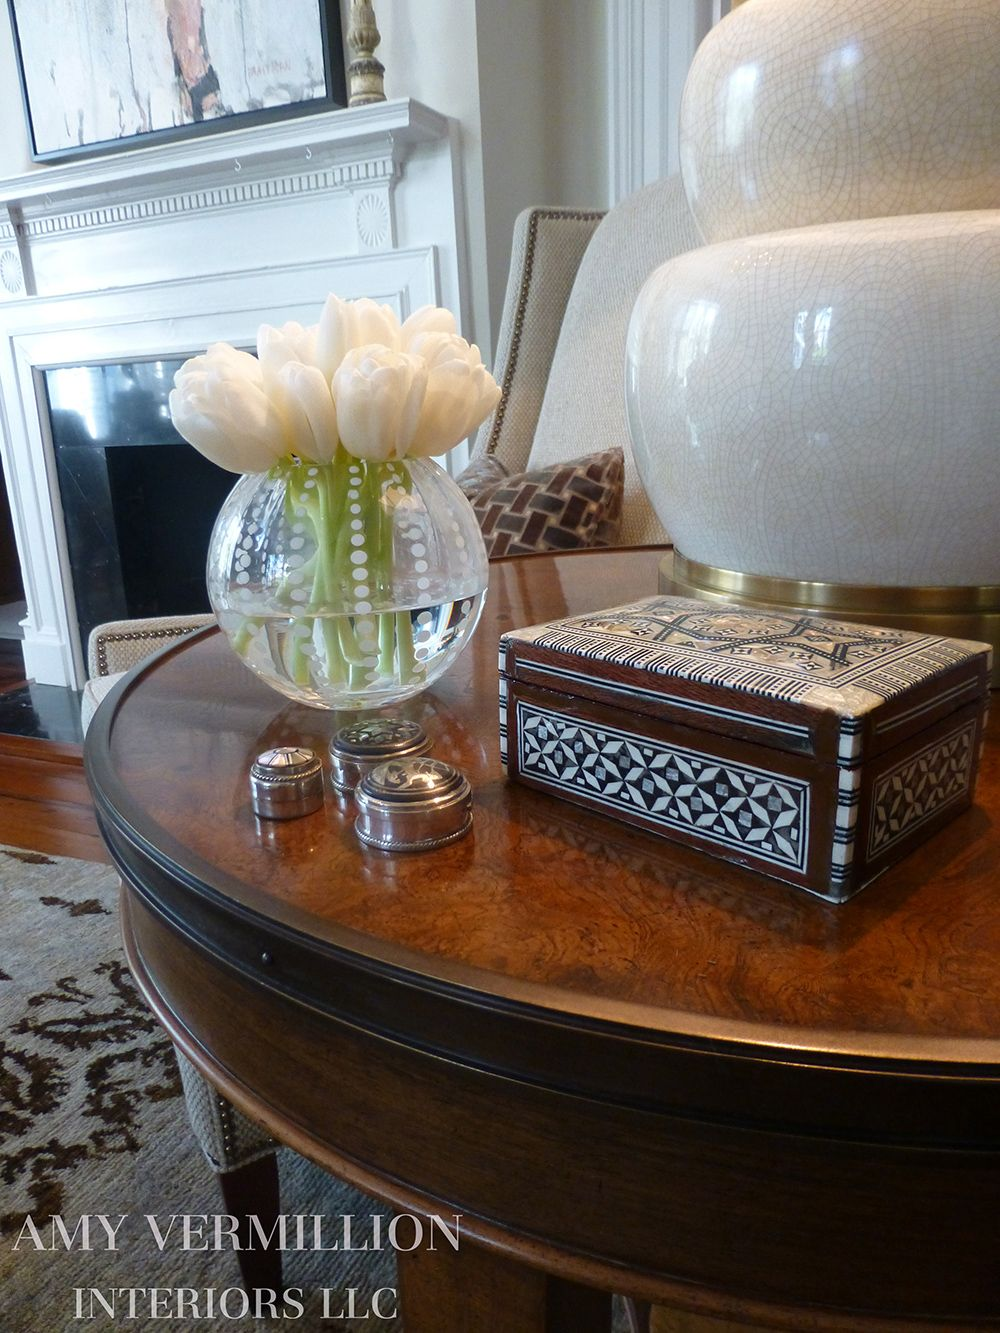 Amy Vermillion Interiors Llc Charleston Project Styling Pinterest Interiors Design Firms